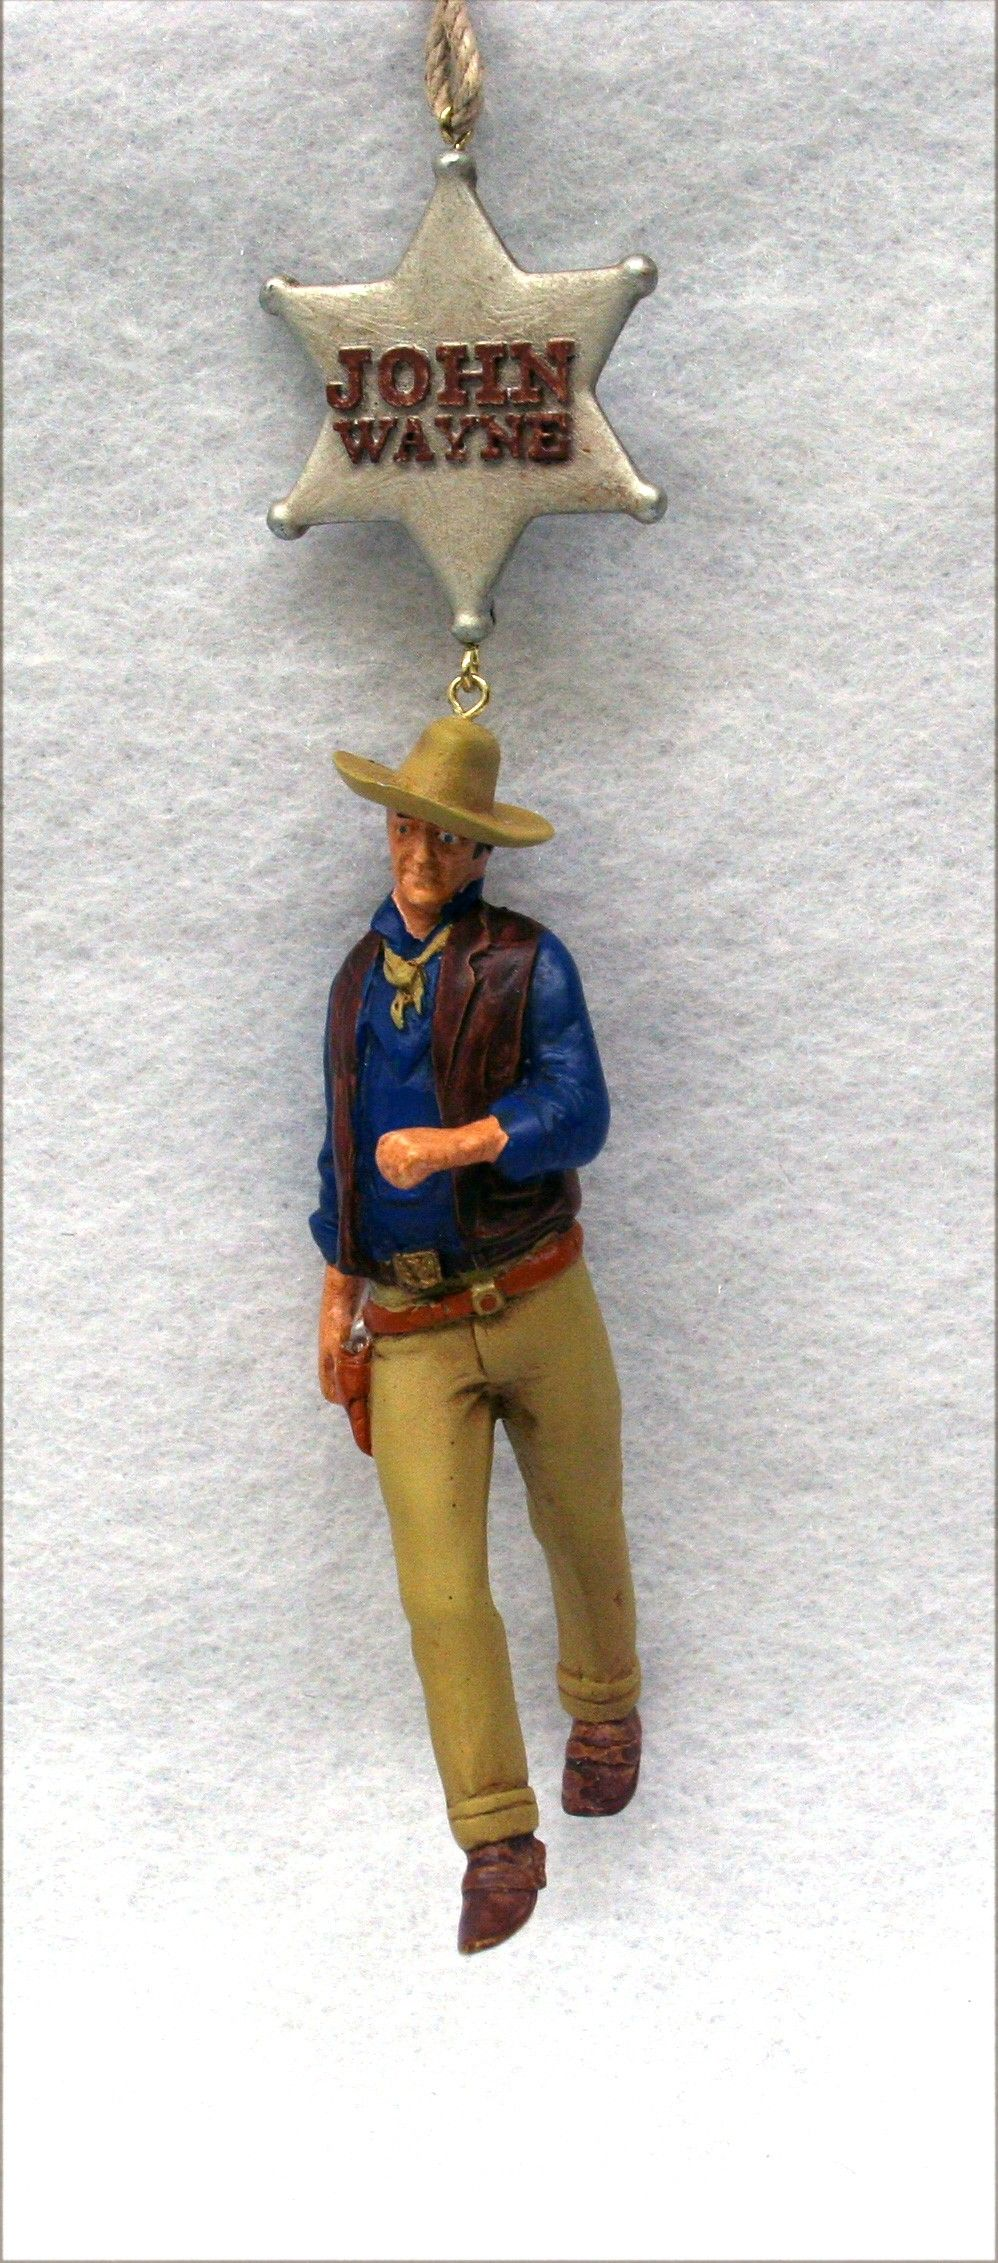 John Wayne Christmas Ornament